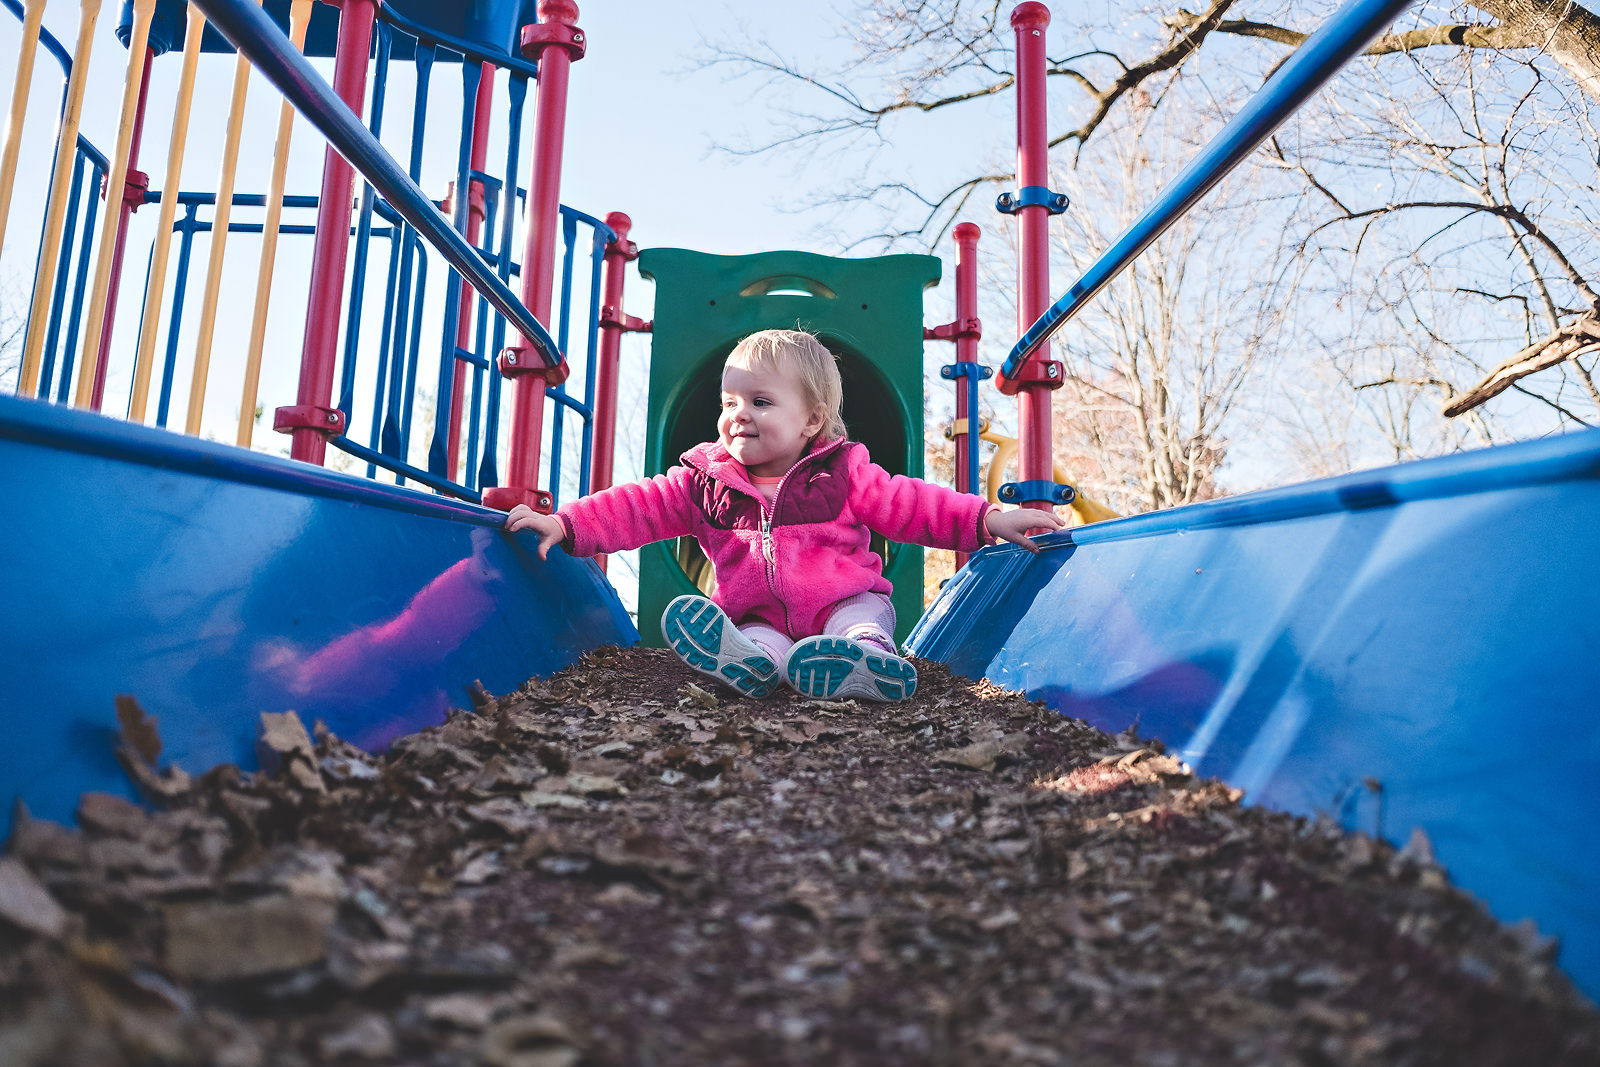 toddler-playing-at-park-in-fall-blue-ramp